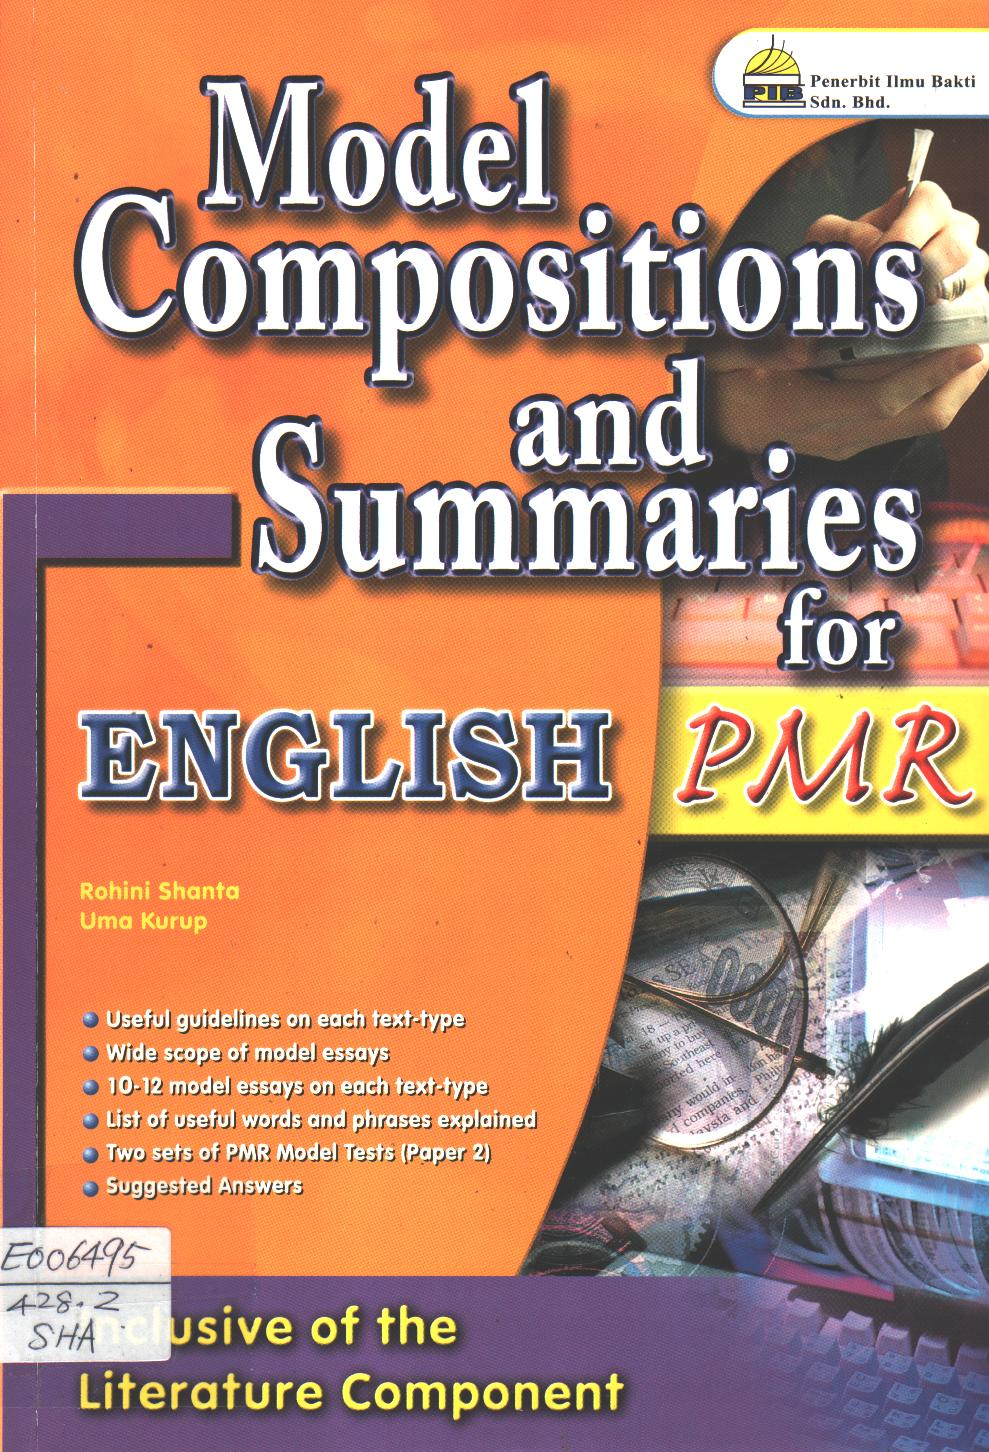 Model Compositions and Summaries for PMR